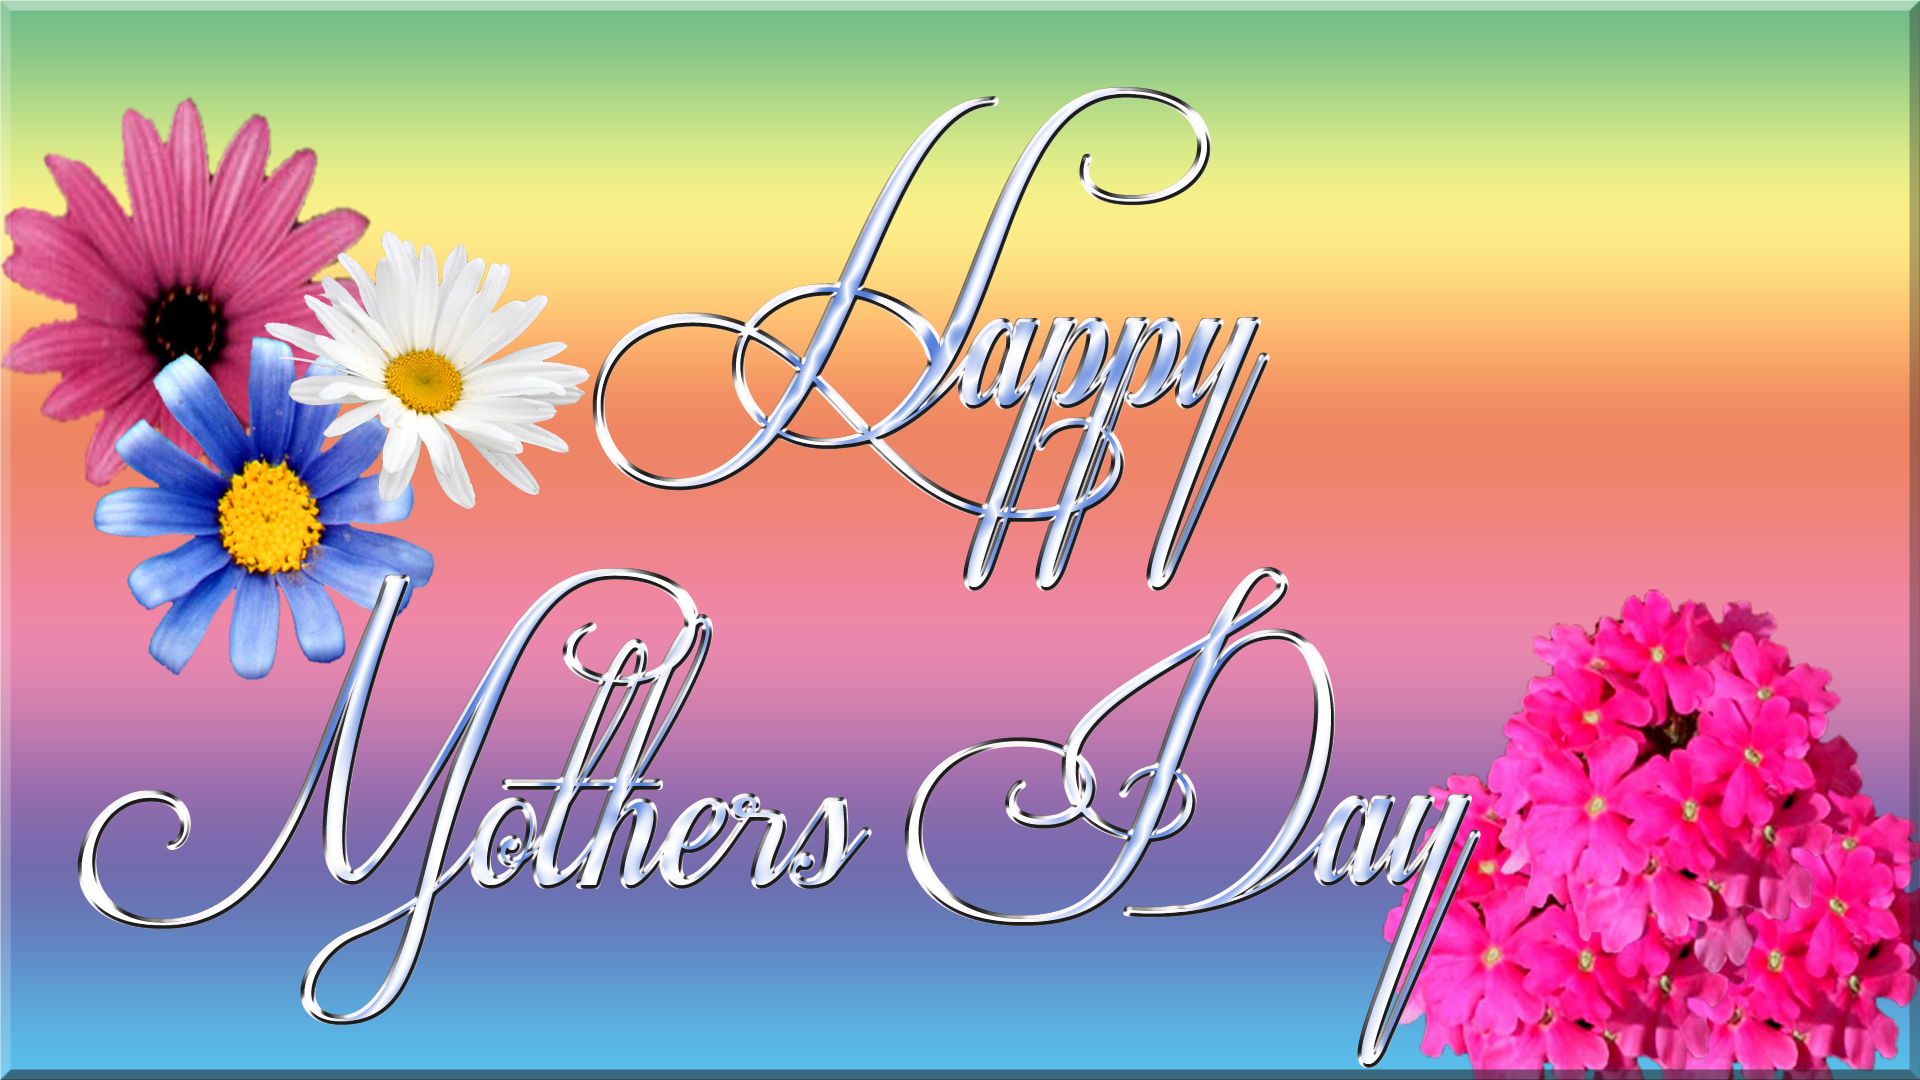 Happy Mother Day Images Wallpapers Pics Greetings Fb Whatsapp DP 2016 1920x1080